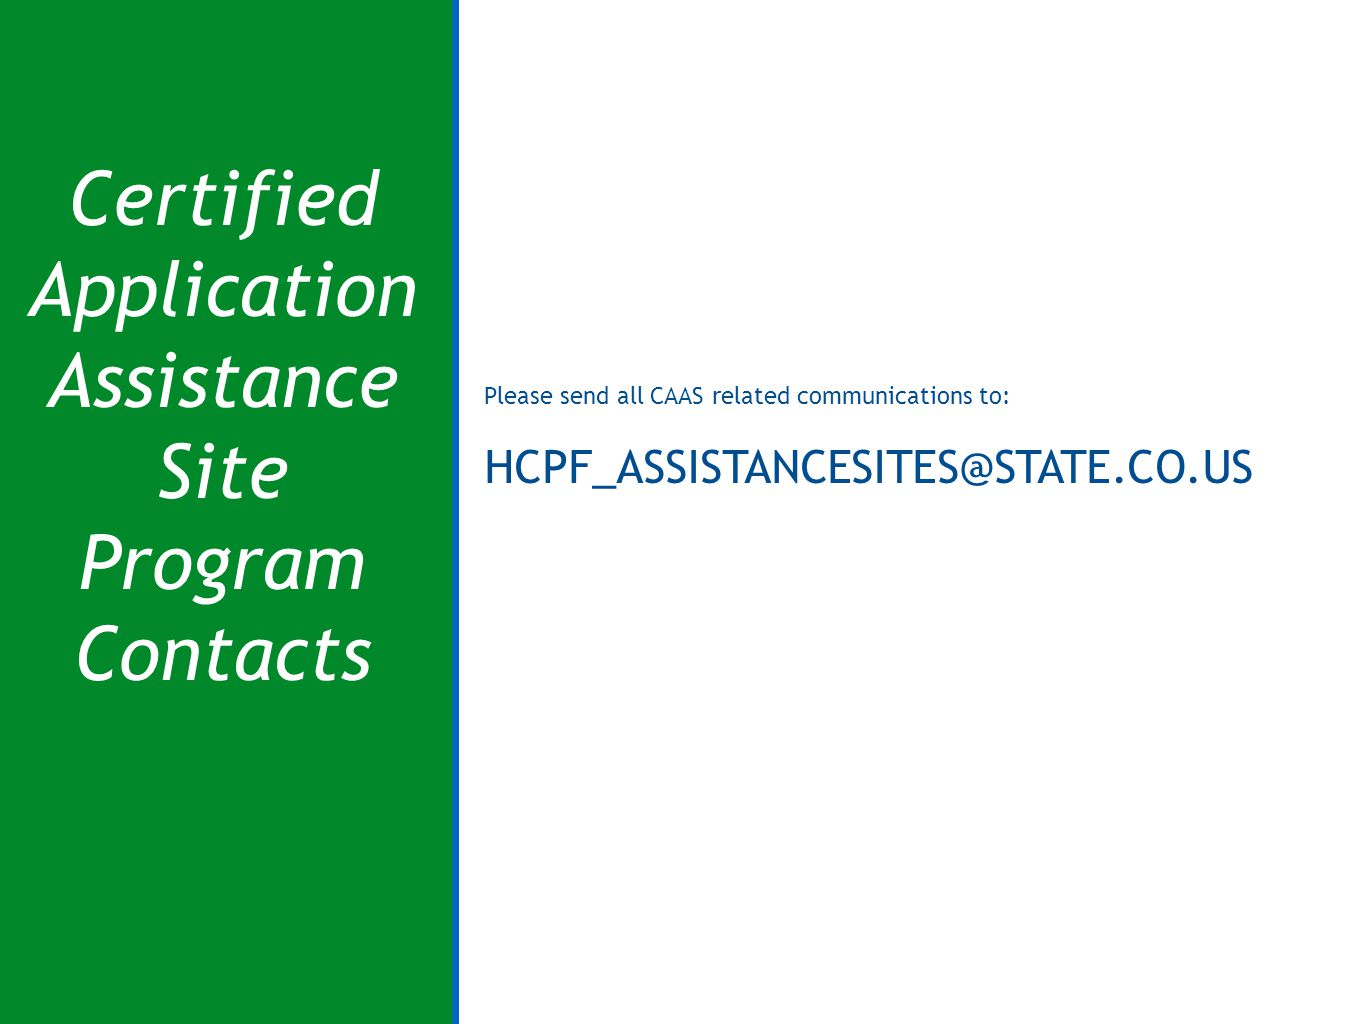 Certified Application Assistance Site Program Contacts